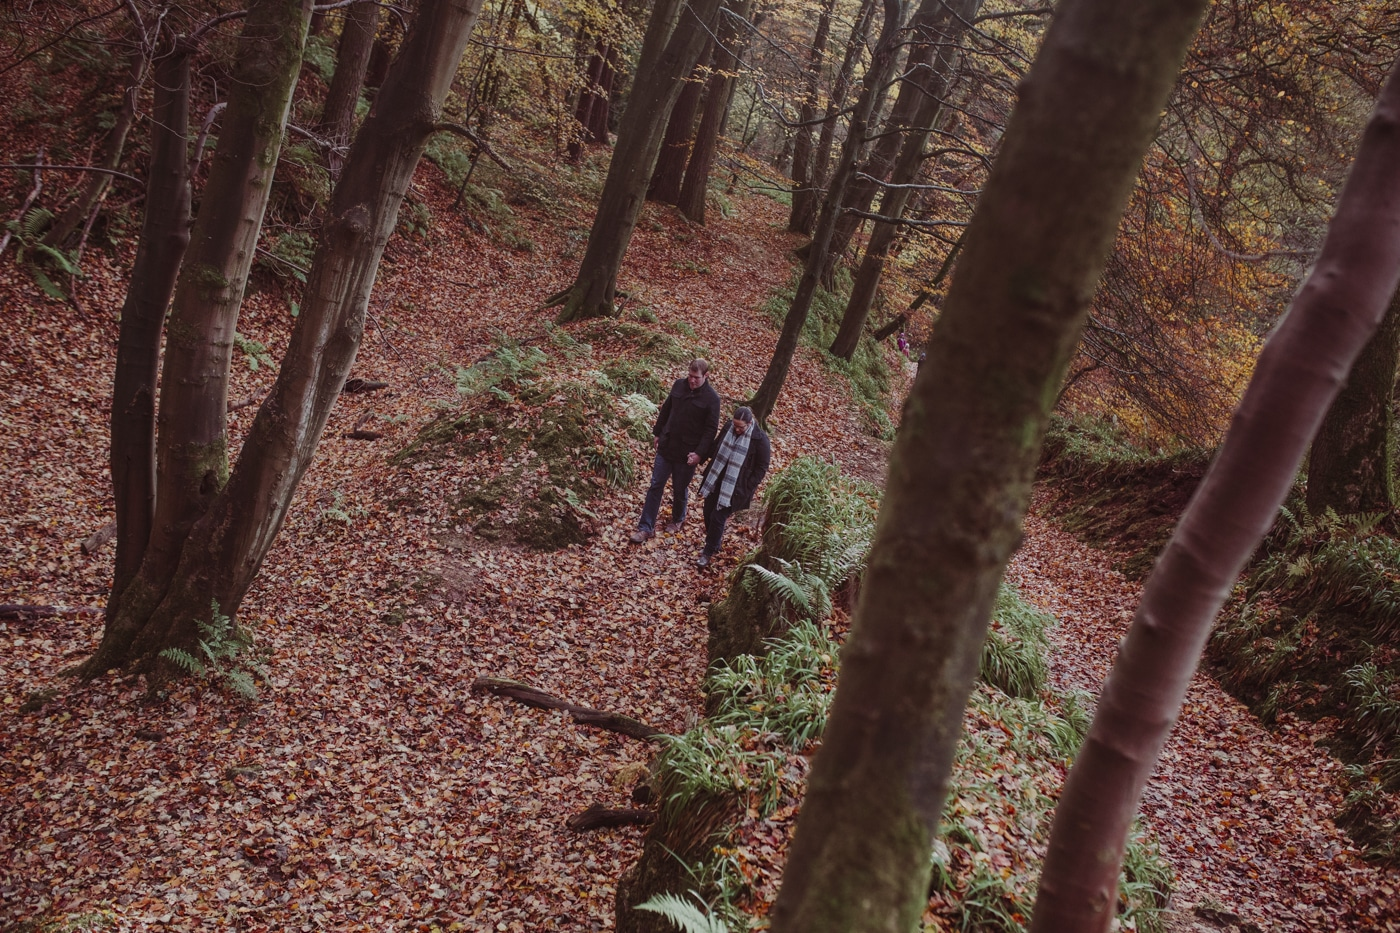 Man and woman walking through leaves and trees by Joshua Wyborn